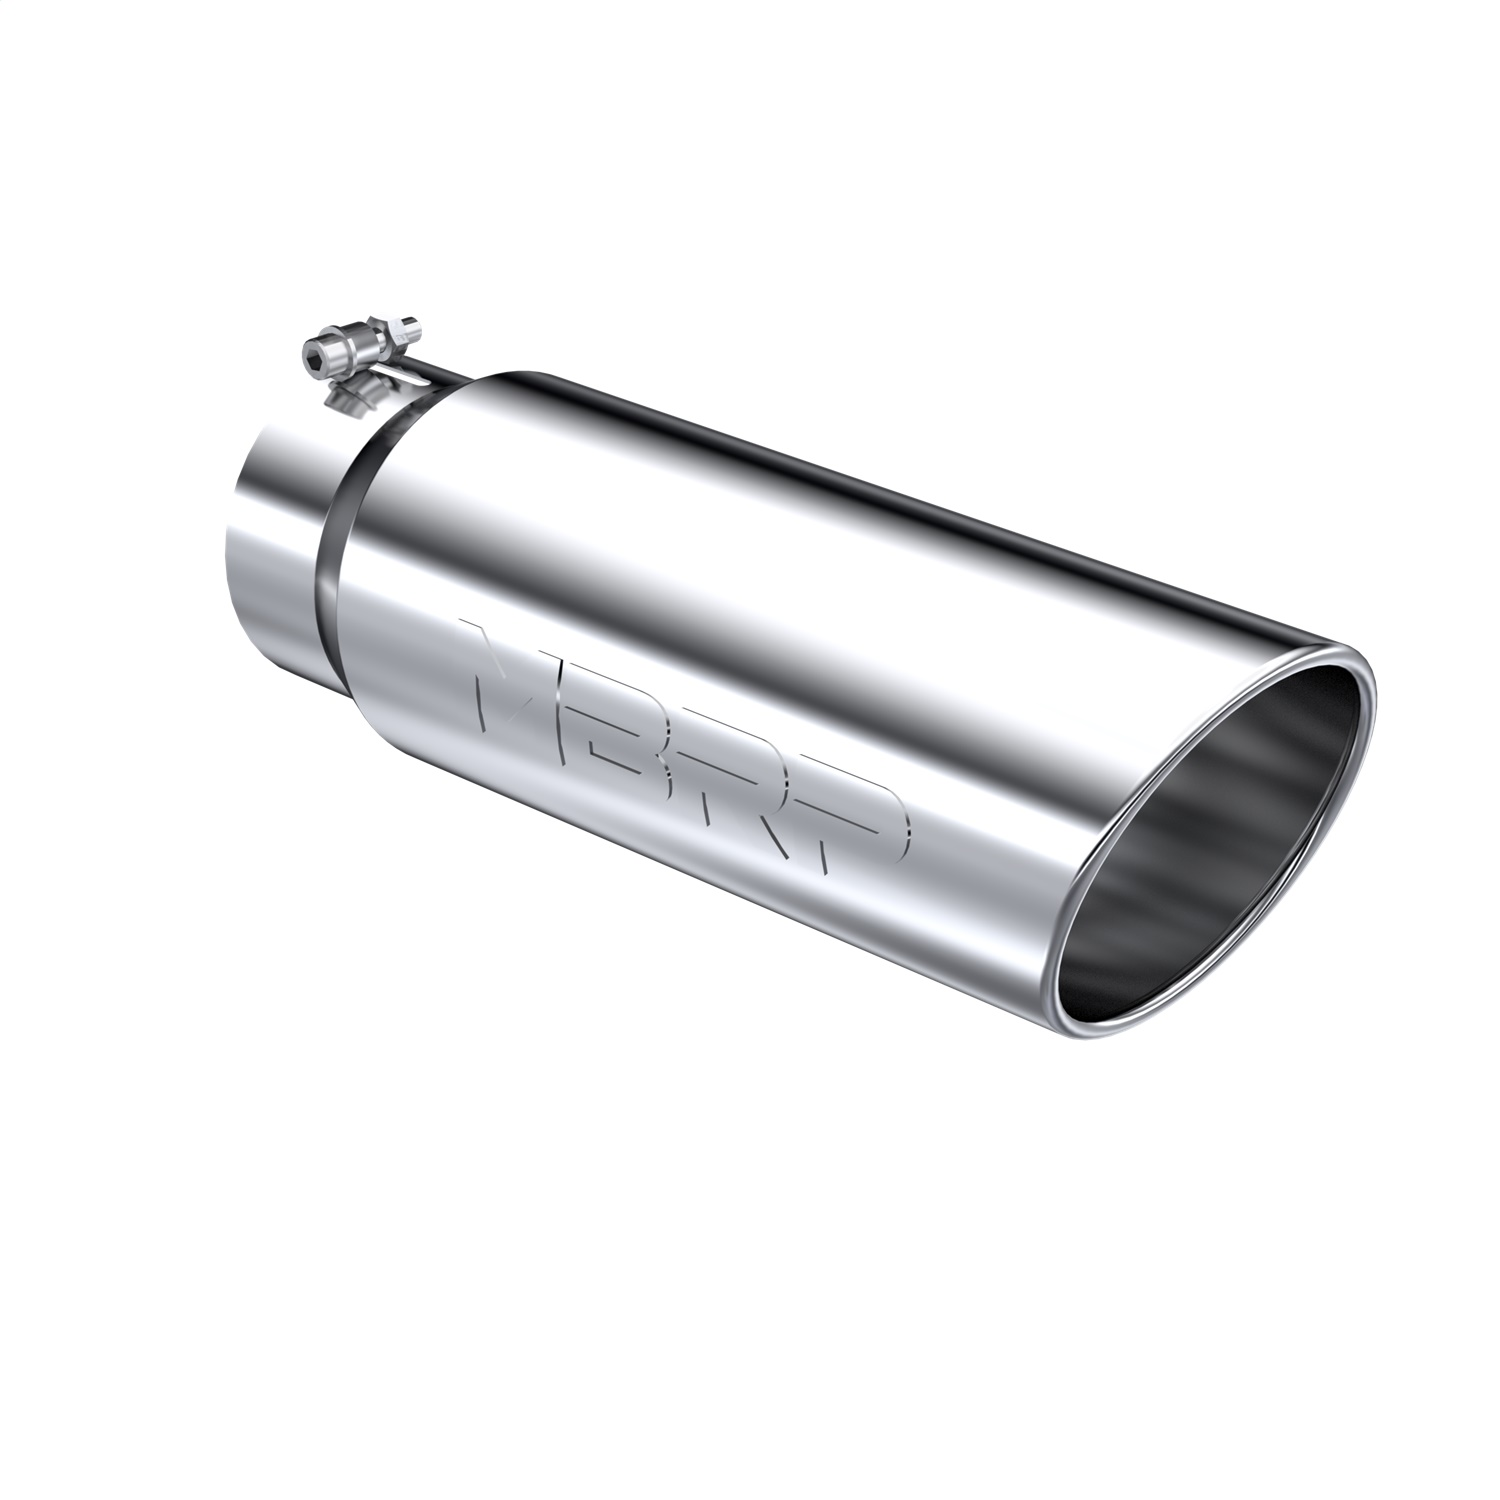 MBRP Exhaust Exhaust Tail Pipe Tip (T5125)